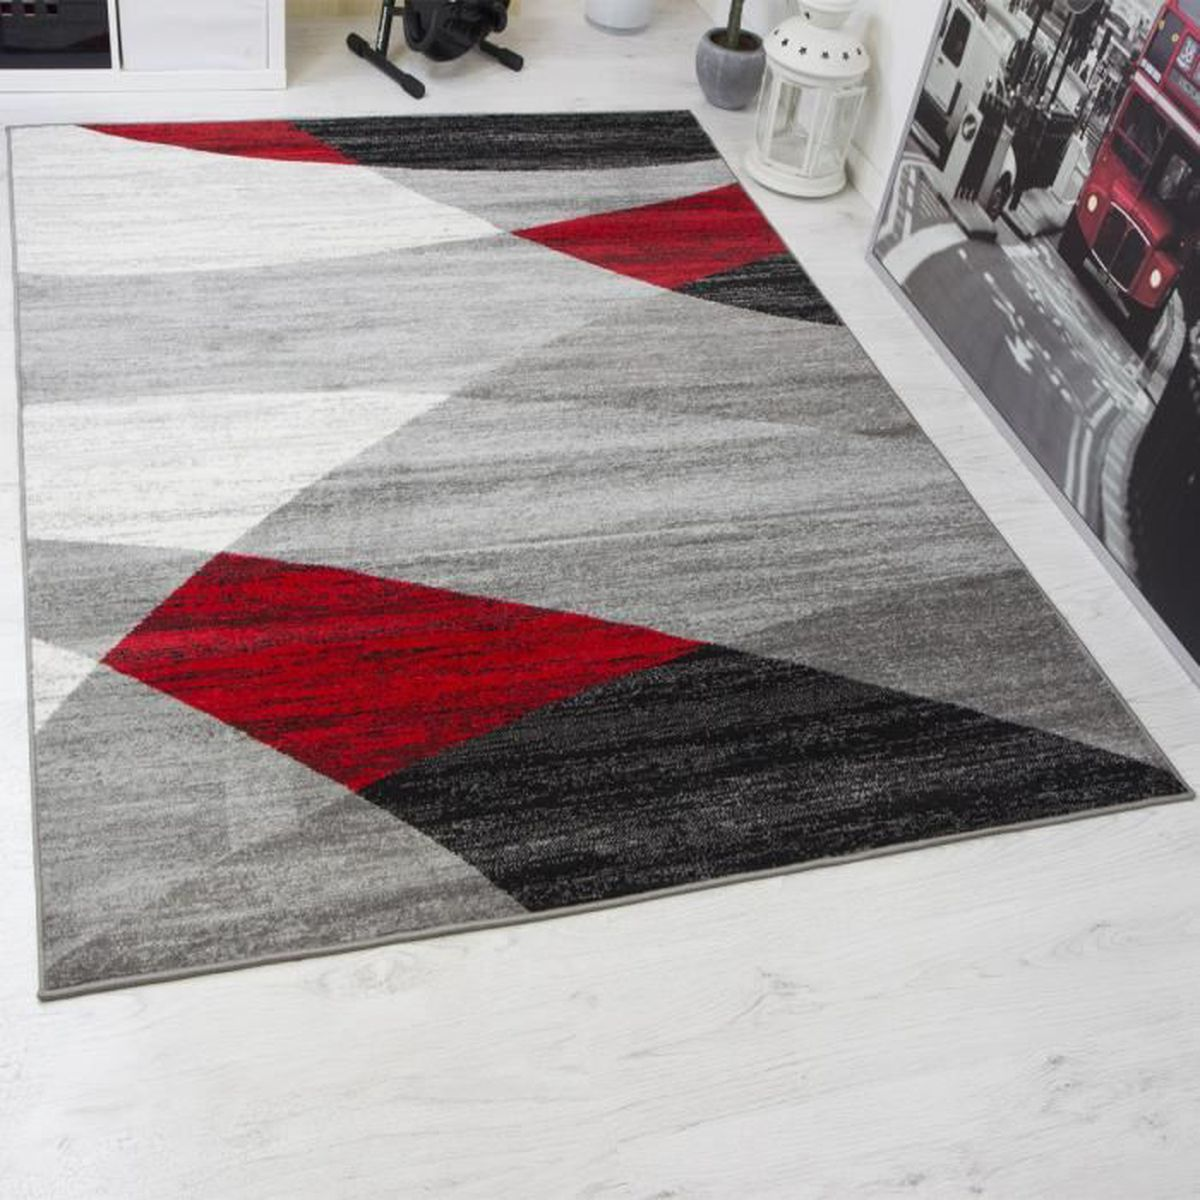 tapis design moderne 200x280 cm blanc noir et rouge motif g om triquegris achat vente. Black Bedroom Furniture Sets. Home Design Ideas